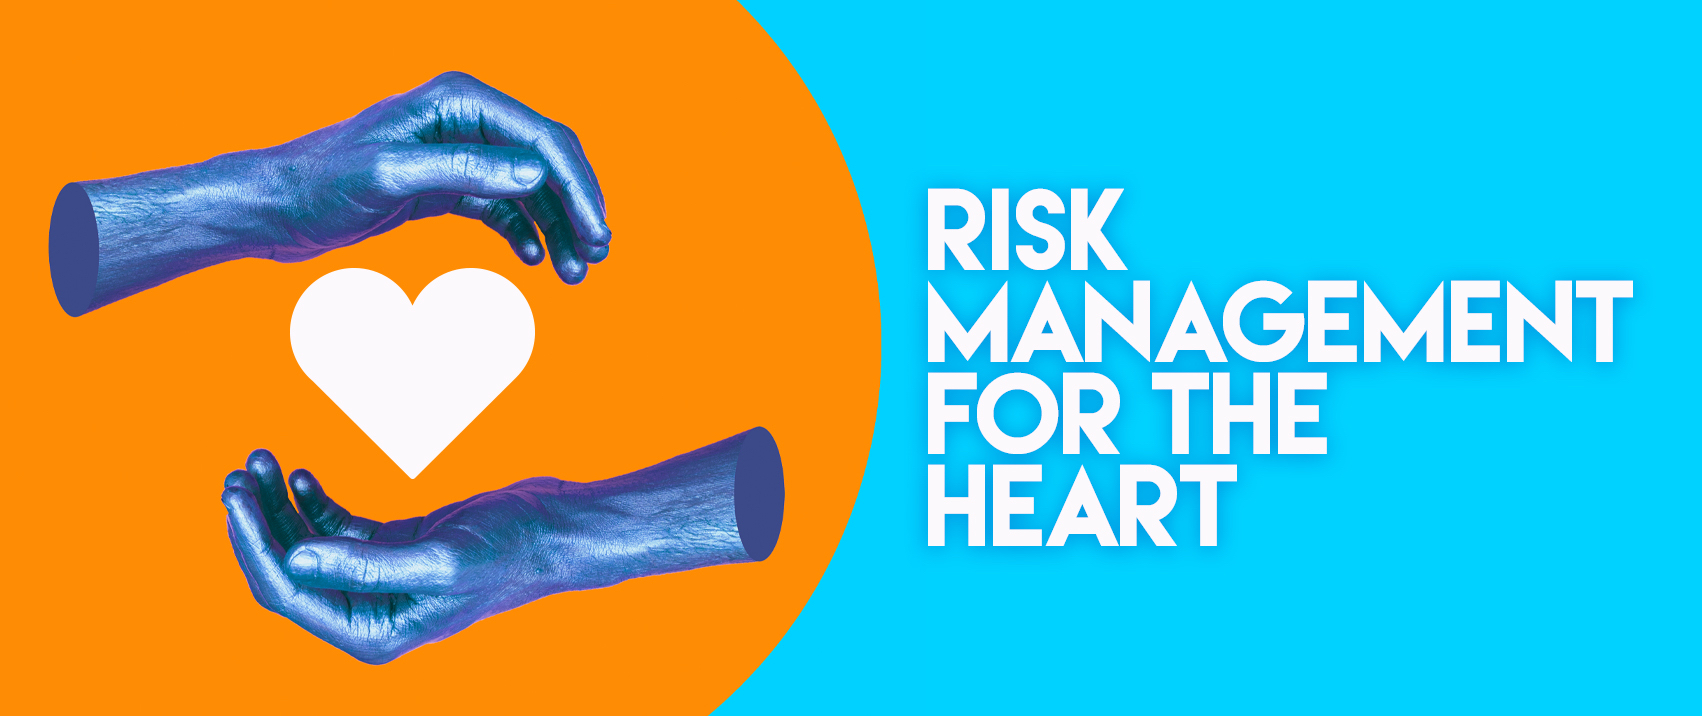 Risk Management For The Heart